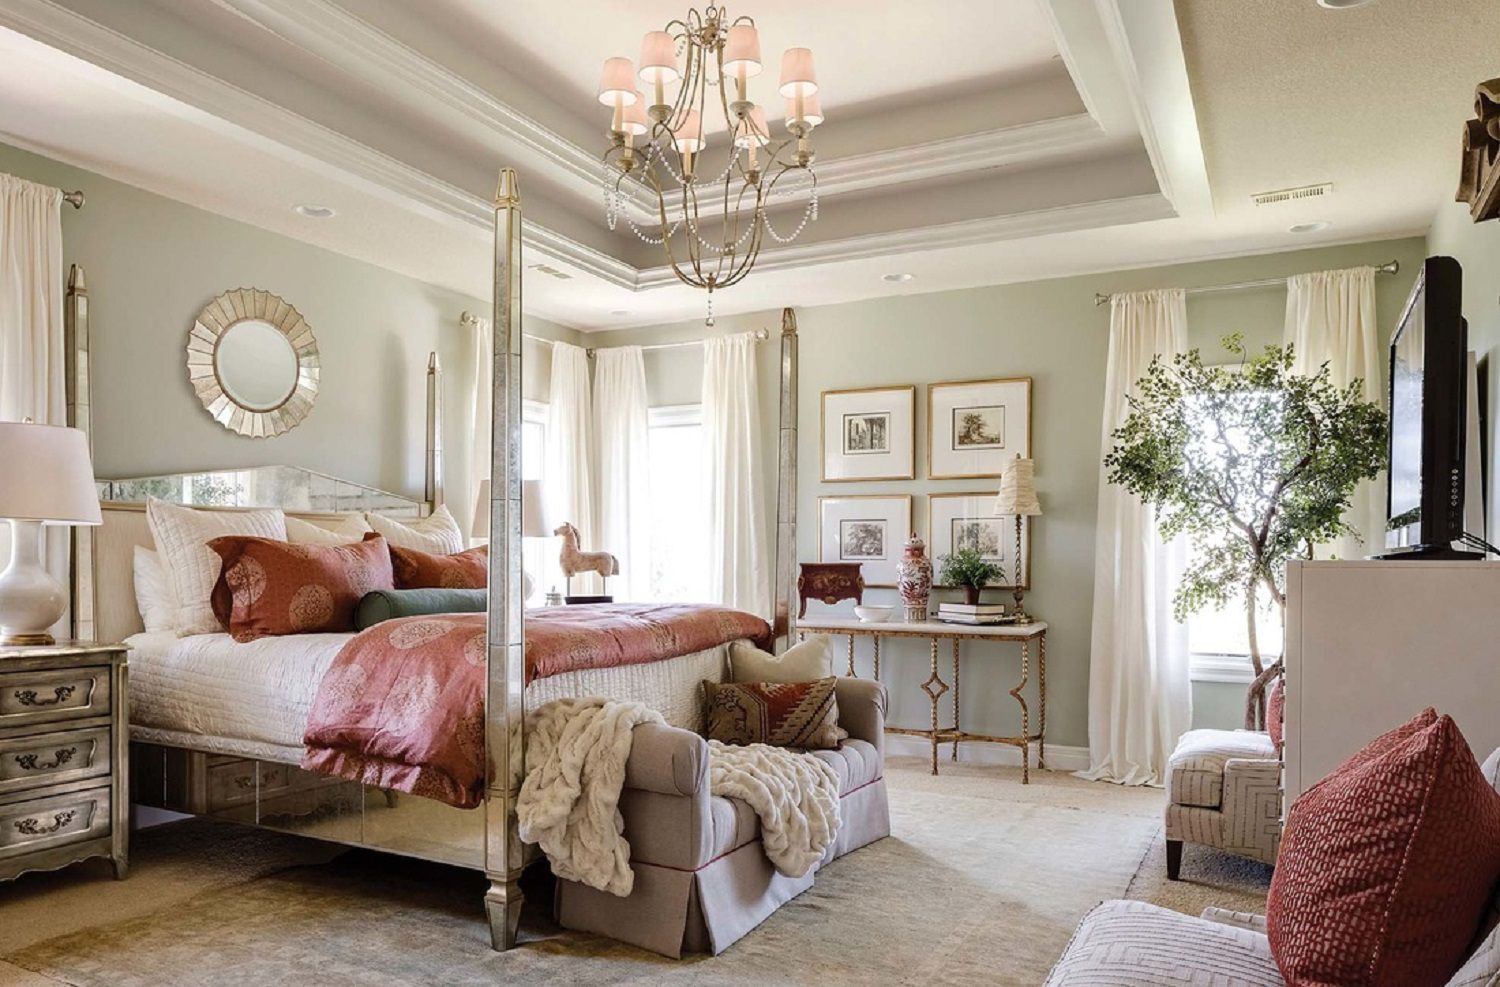 Small Master Bedroom Ideas Tips And Photos - Master bedrooms design ideas